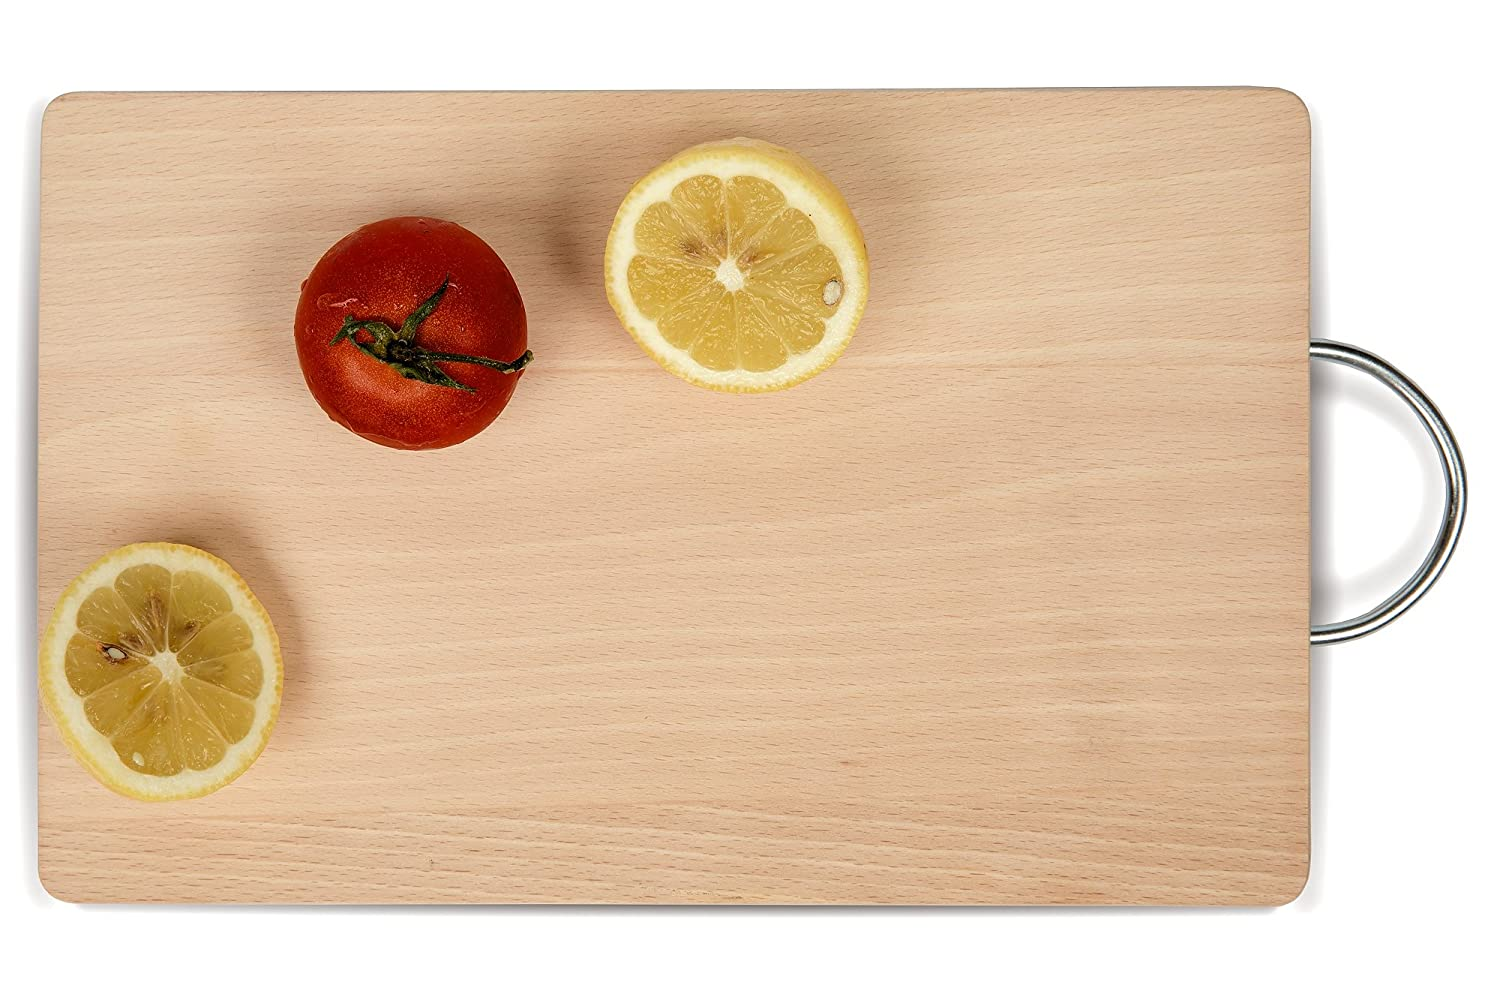 Cutting Board with Metallic Handle – Natural Wood Chopping Board 11.02inch x 7.48 inch x 0.62 inch (19 cm x 28 cm x 1.6 cm L x W x H) Best for Meat, Vegetable, Cheese herb, BBQ. Practic